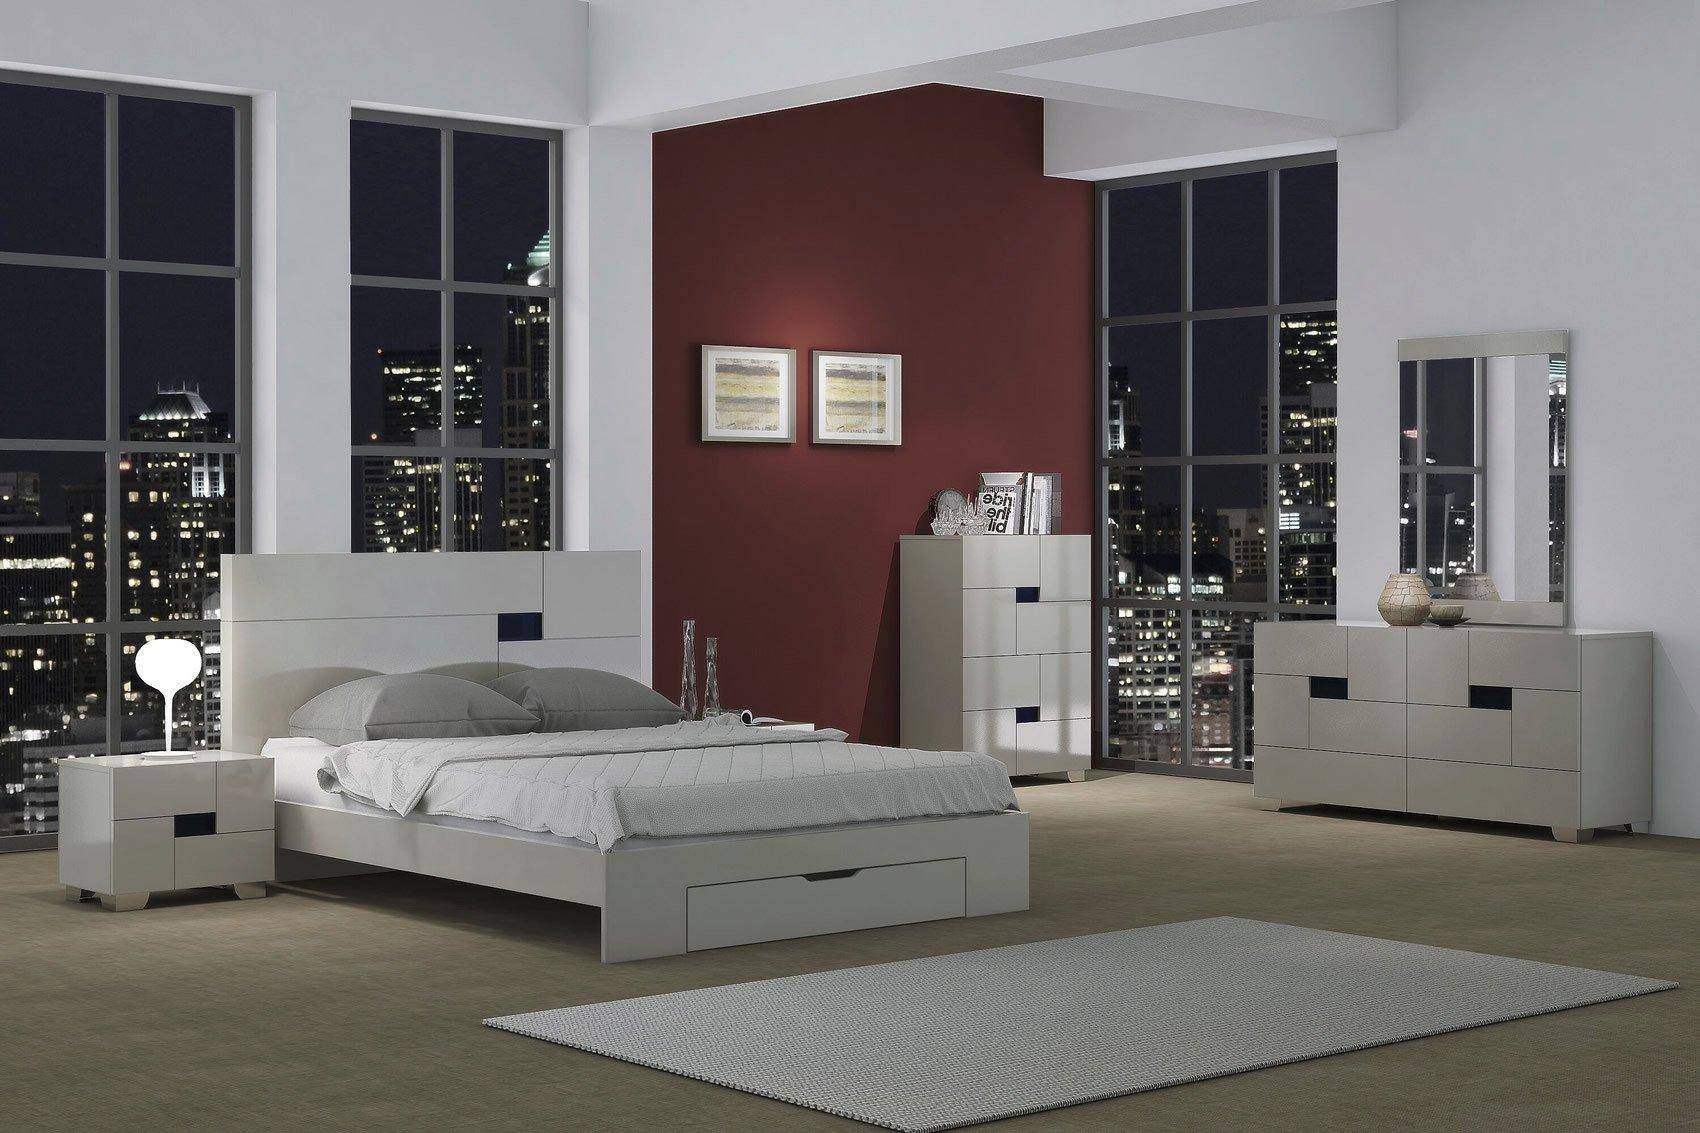 Full Bedroom Furniture Set Beautiful Contemporary Light Gray Lacquer Storage Queen Bedroom Set